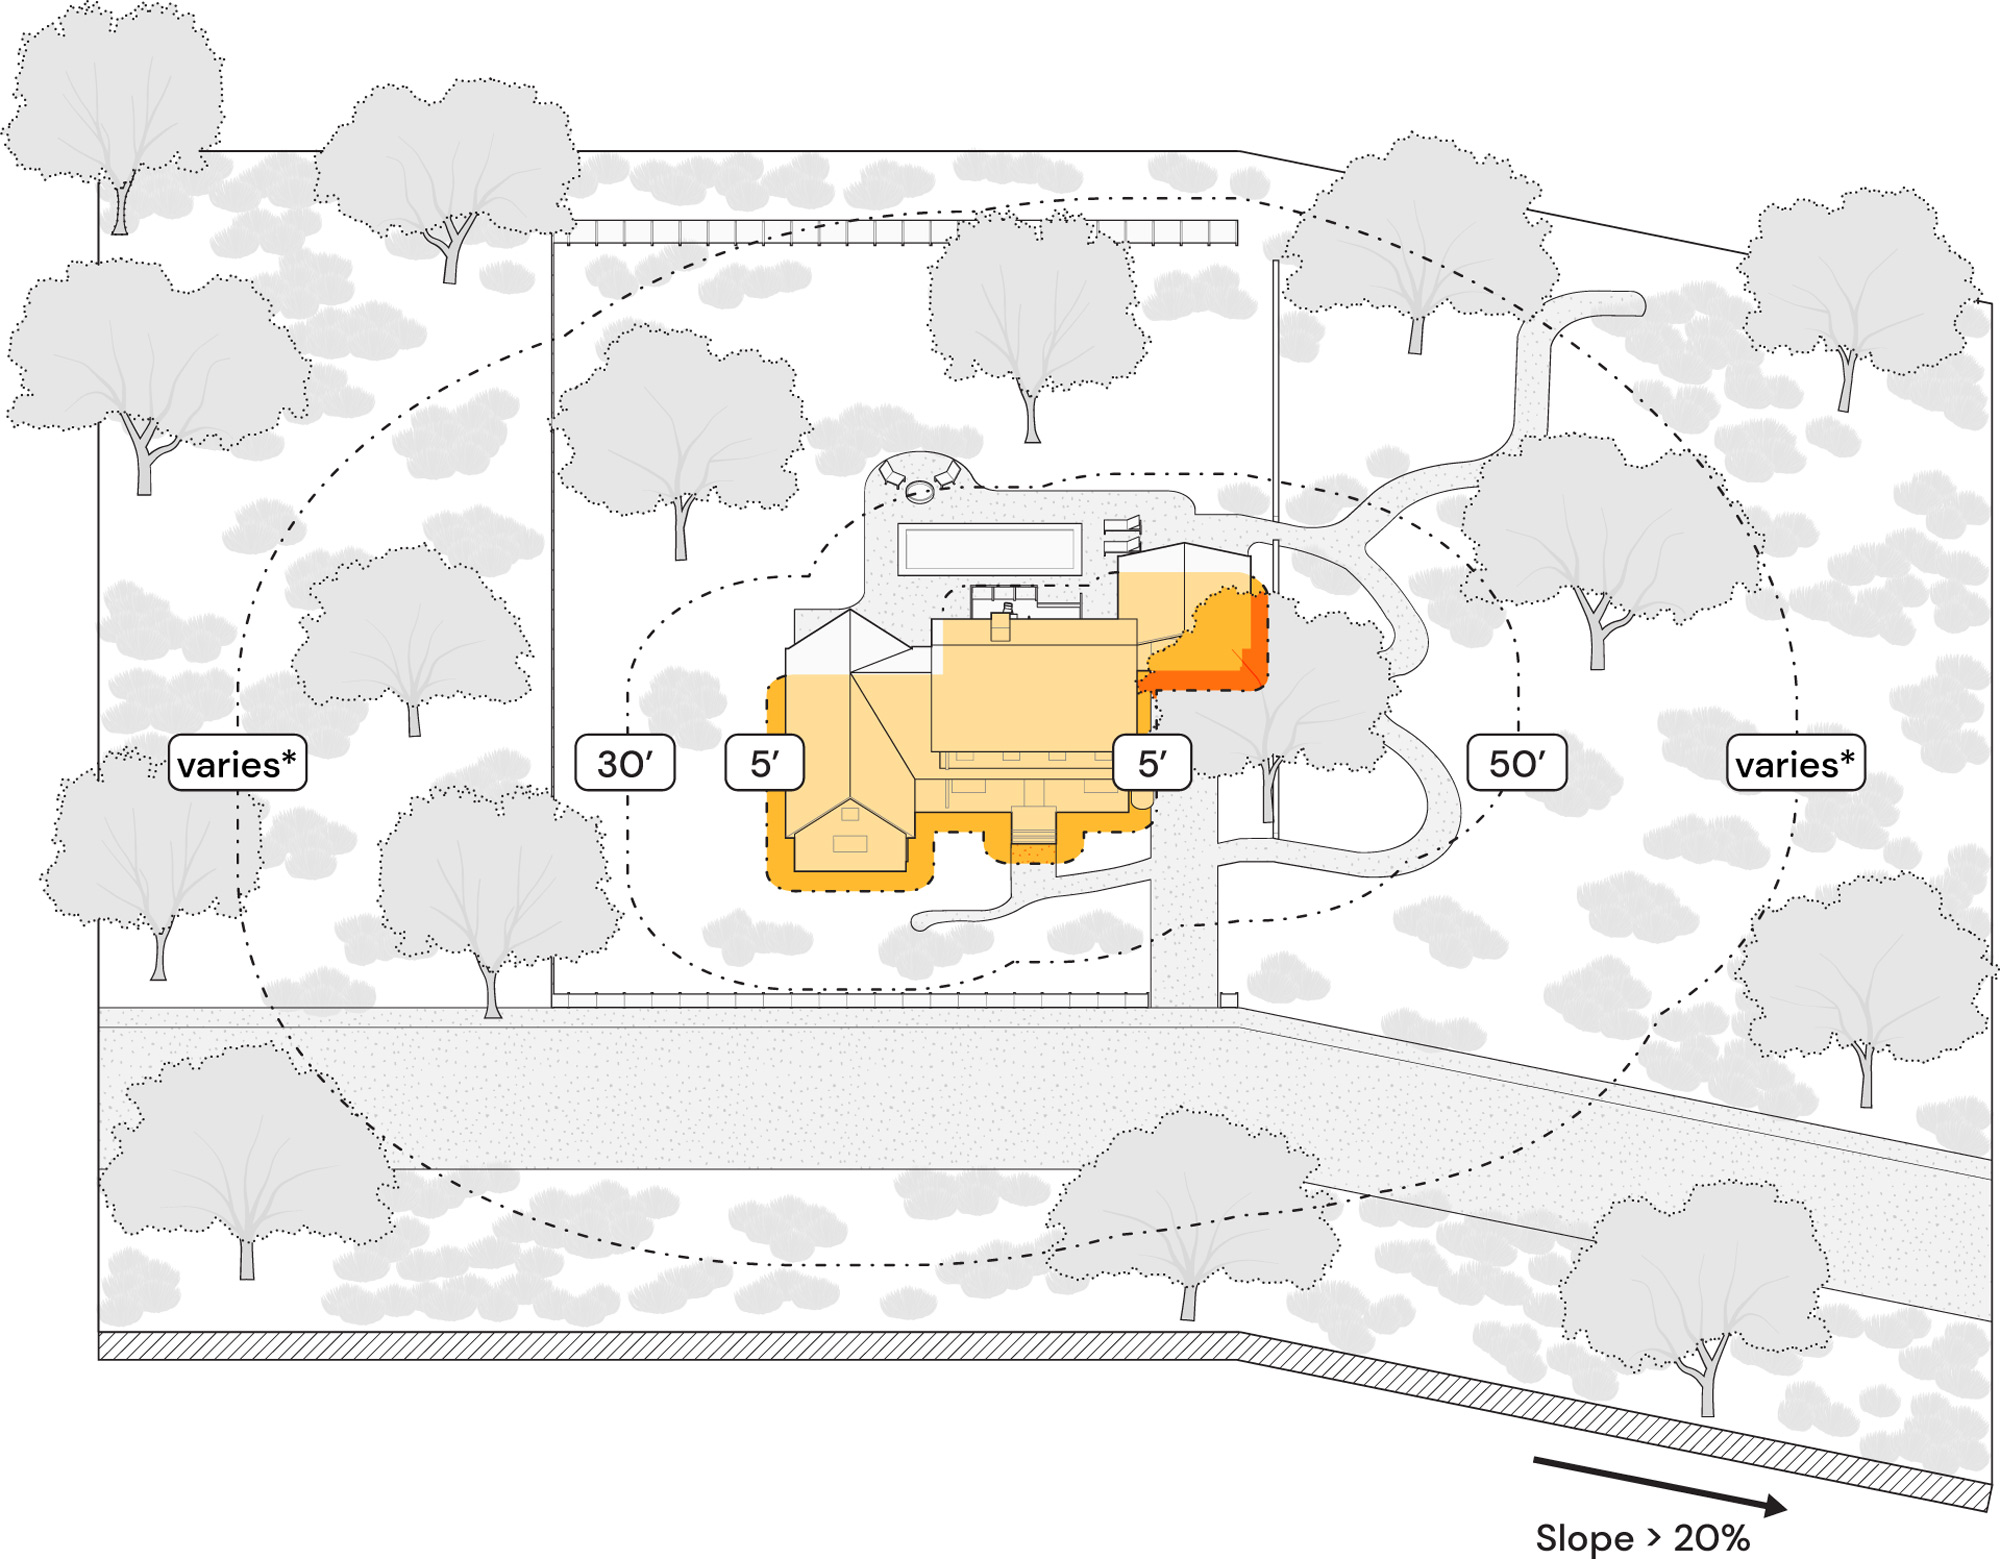 a diagram showing necessary ember resident zones in a house